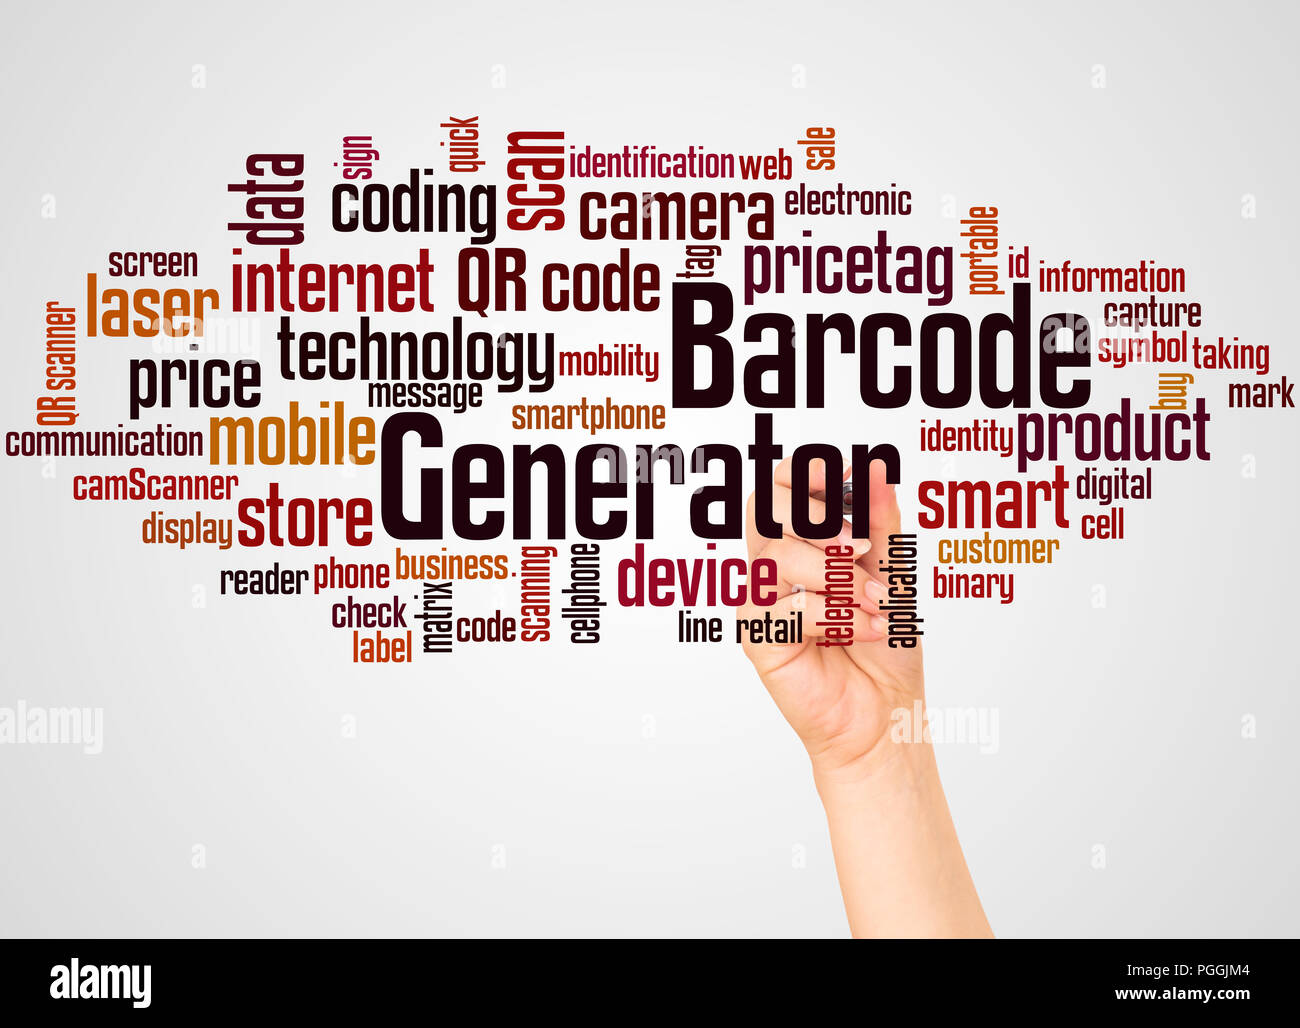 Barcode Generator word cloud and hand with marker concept on white